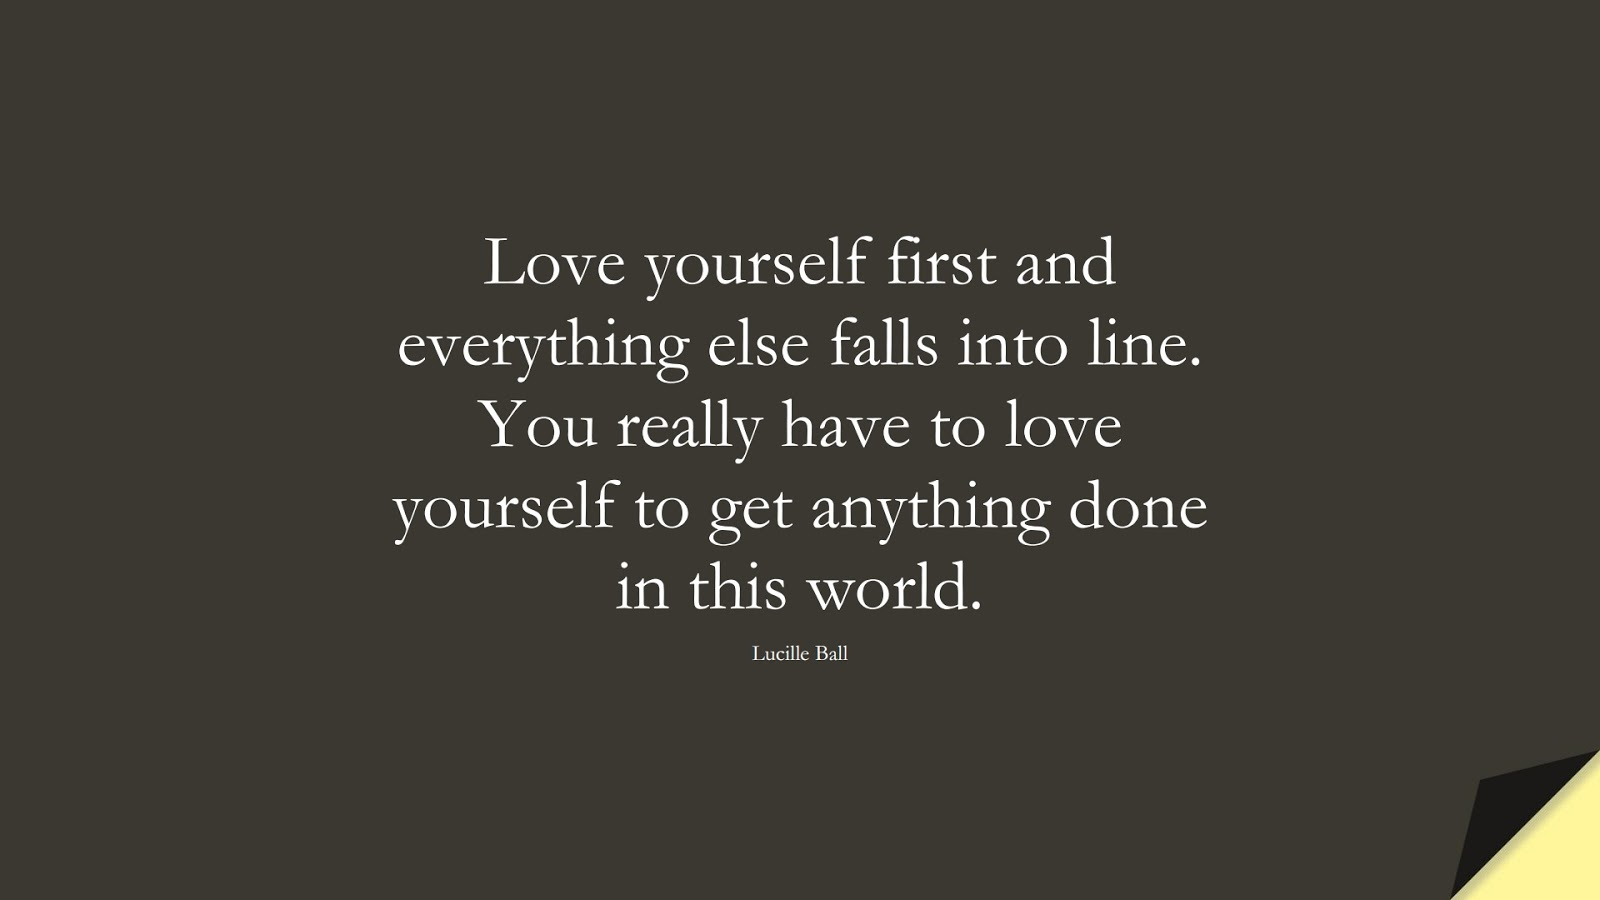 Love yourself first and everything else falls into line. You really have to love yourself to get anything done in this world. (Lucille Ball);  #LifeQuotes